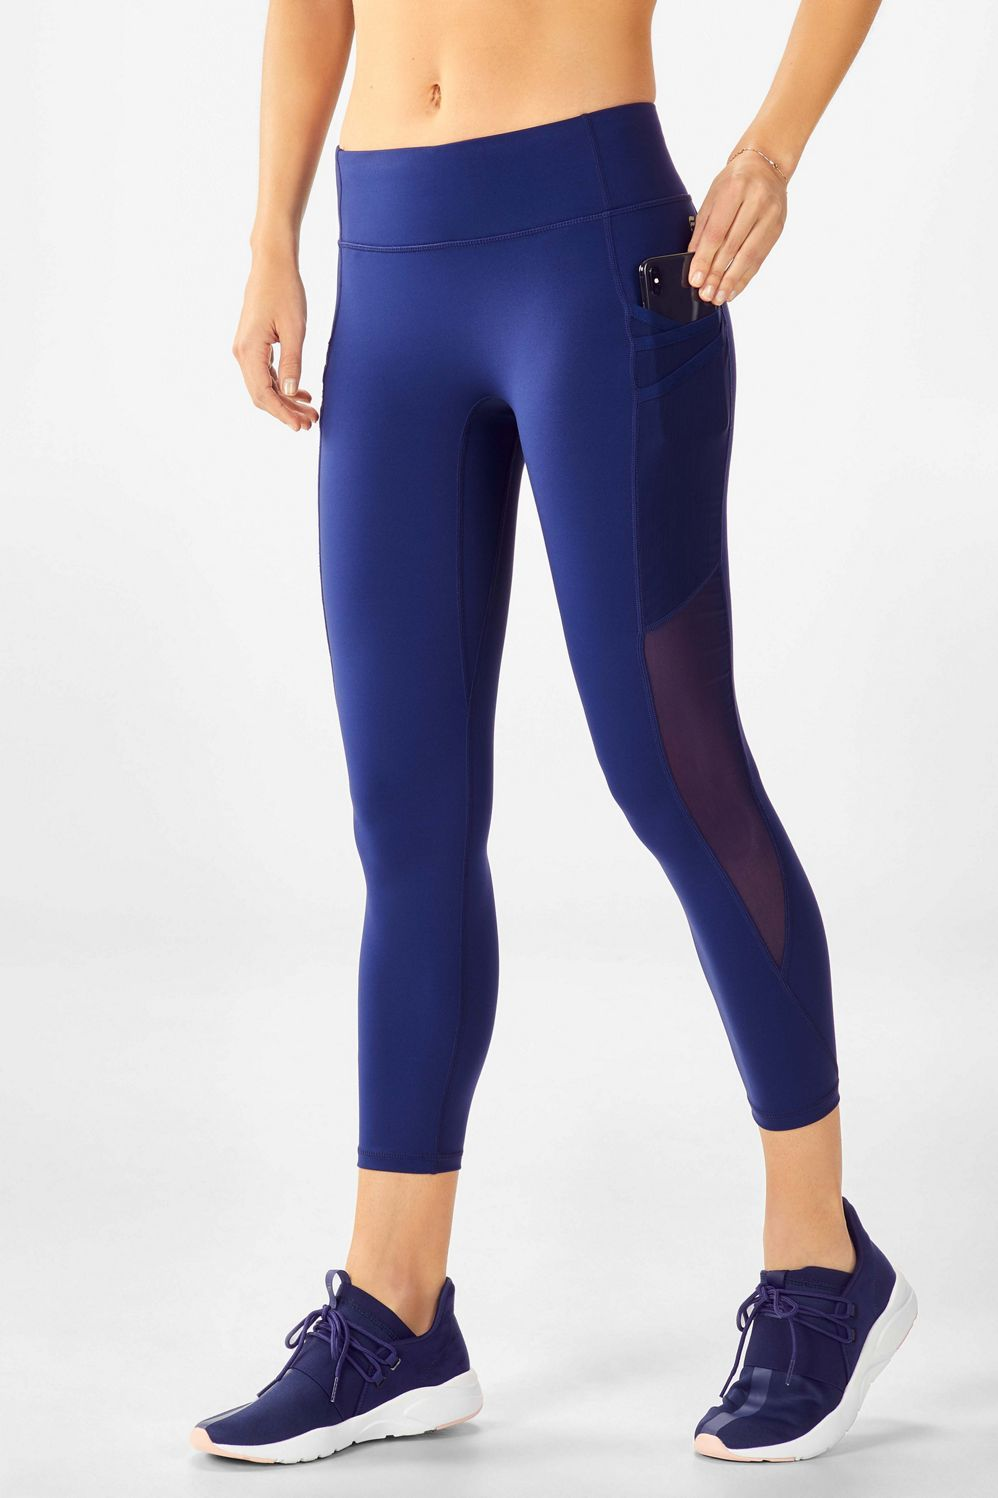 d36b10c52f That's why we designed our 7/8 legging with an innovative triple-pocket  design. Our most versatile style ever features a glove-like fit ...